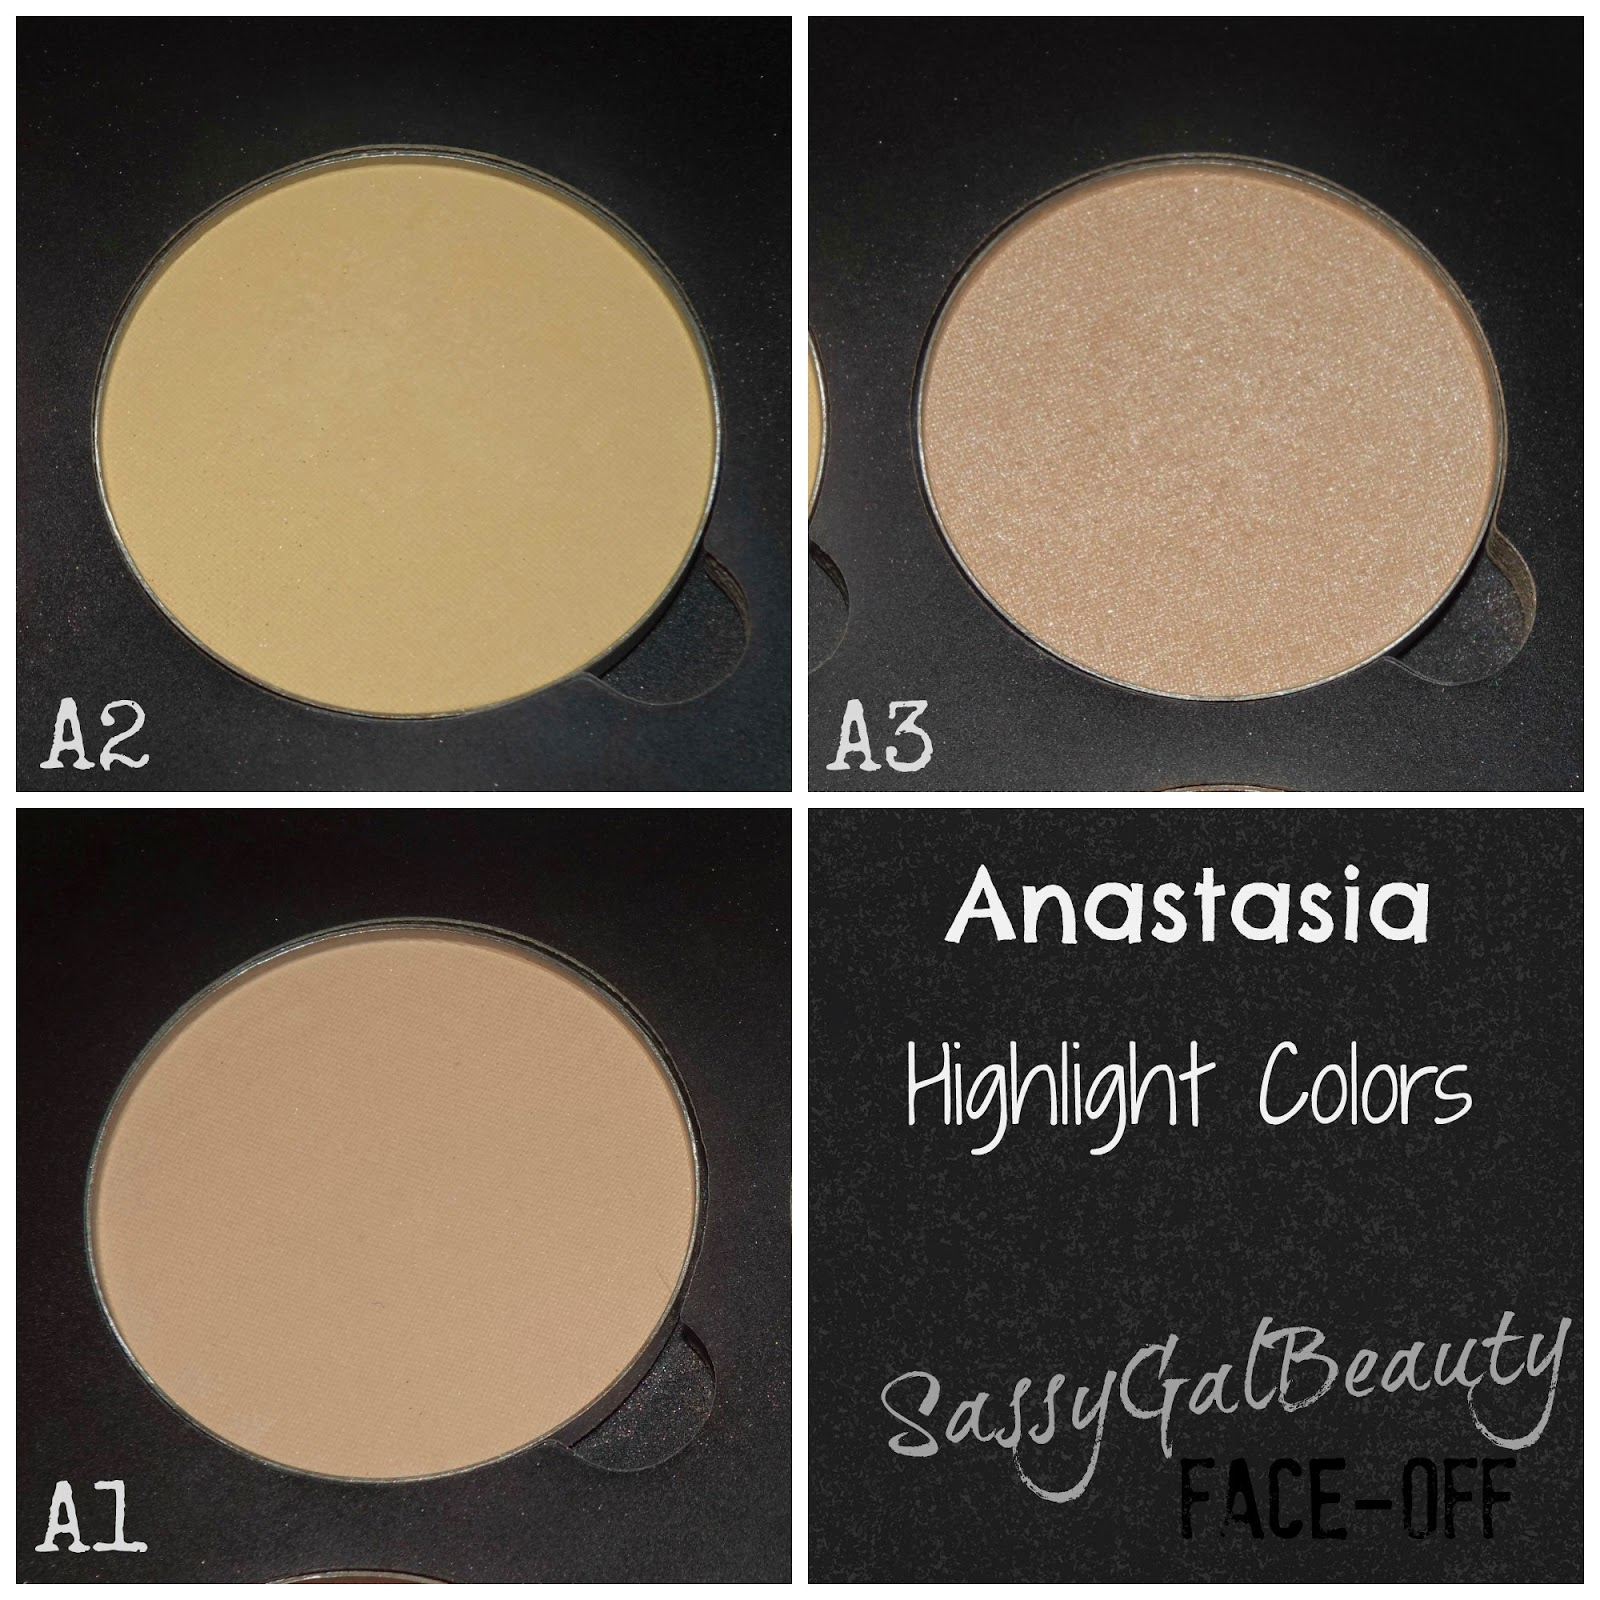 Anastasia Highlight Shades